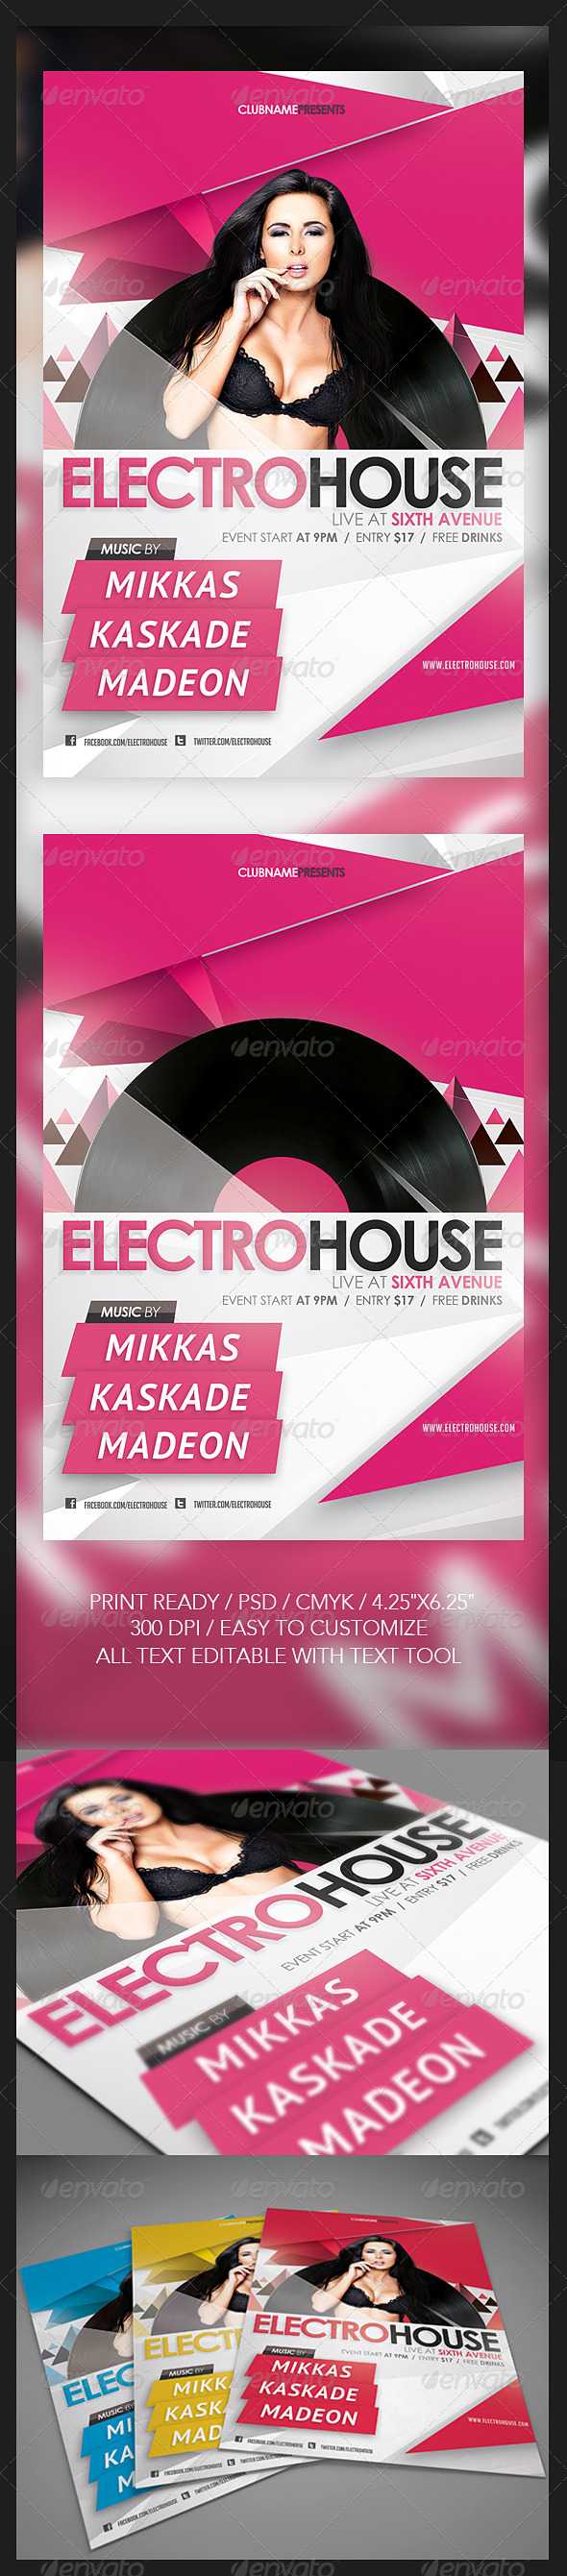 GraphicRiver Electro House Flyer 5143341